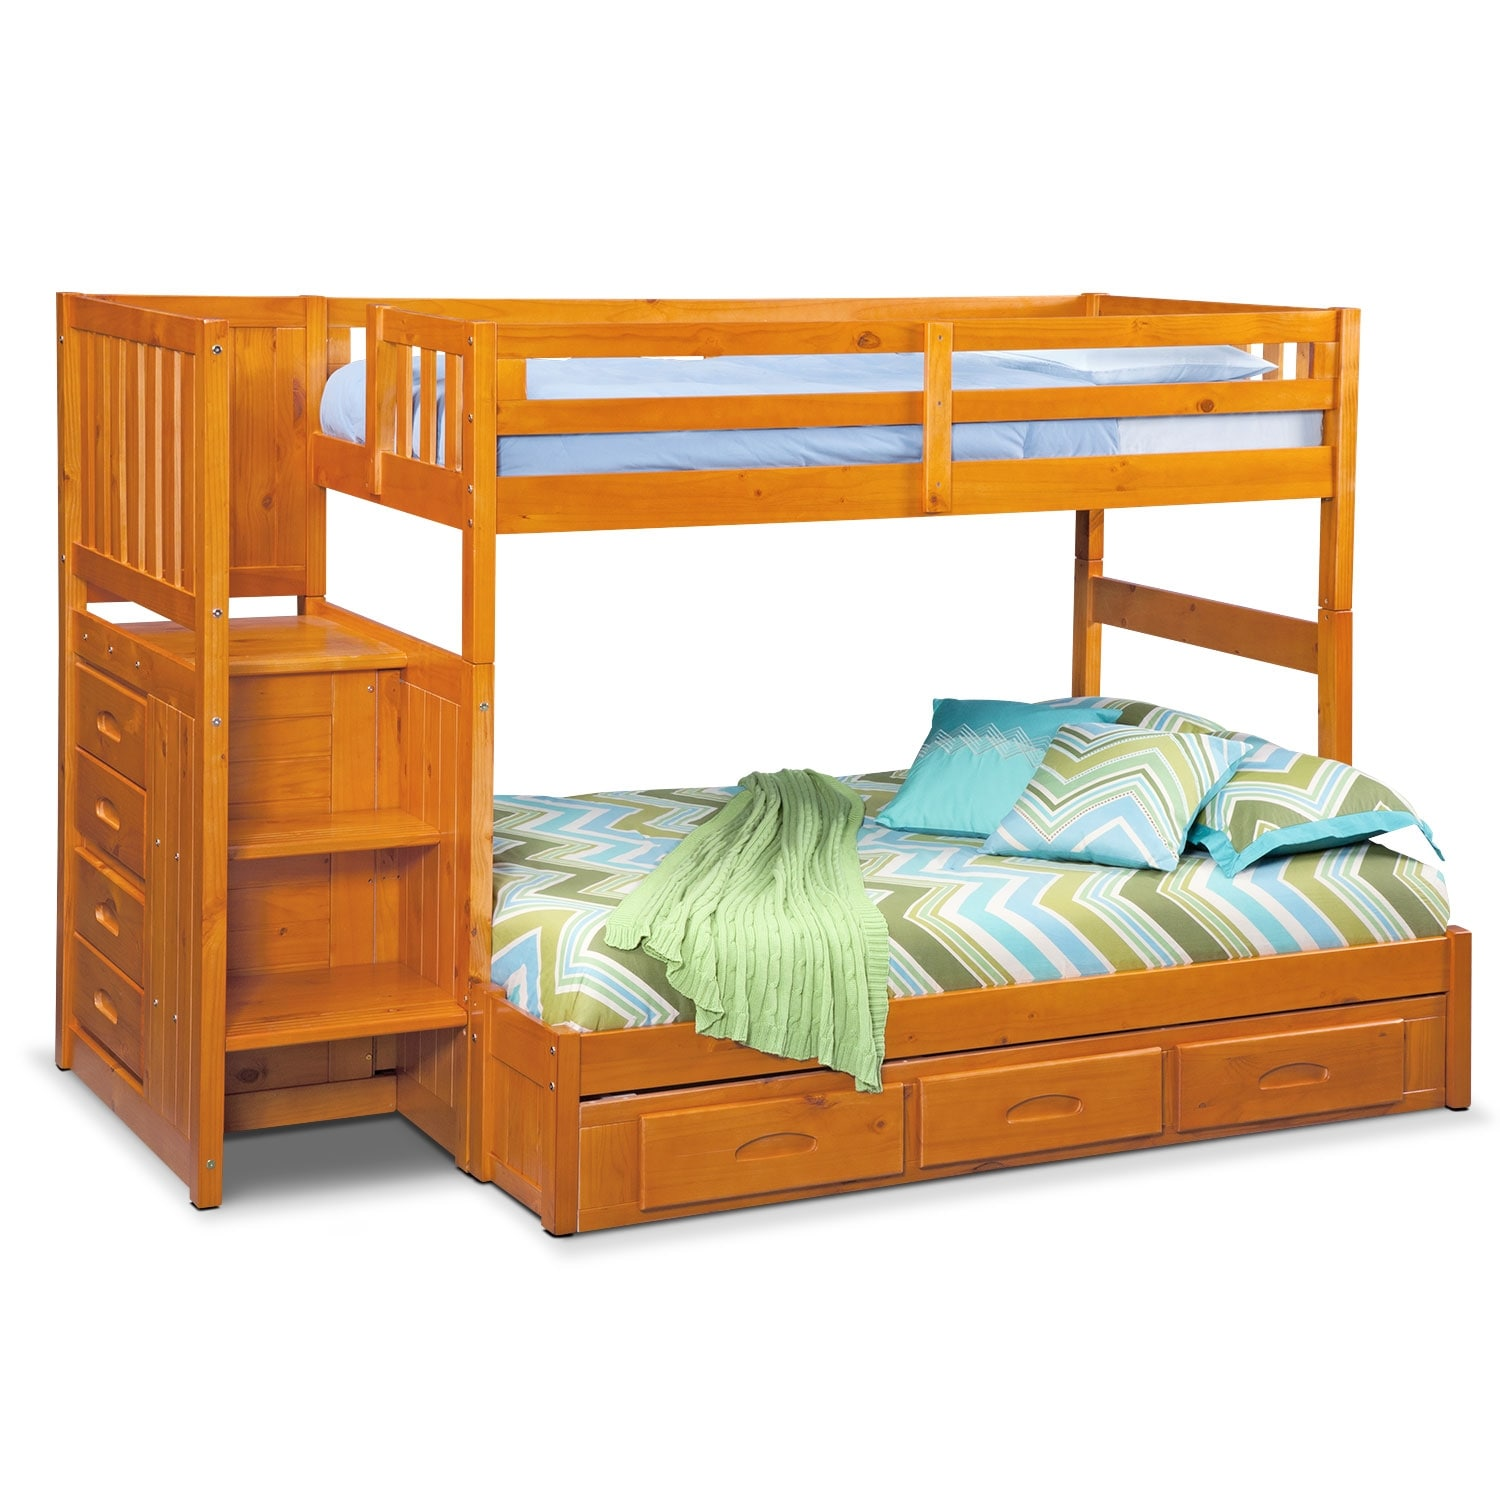 Ranger twin over full bunk bed with storage stairs underbed drawers pine american - Kids twin beds with storage drawers ...